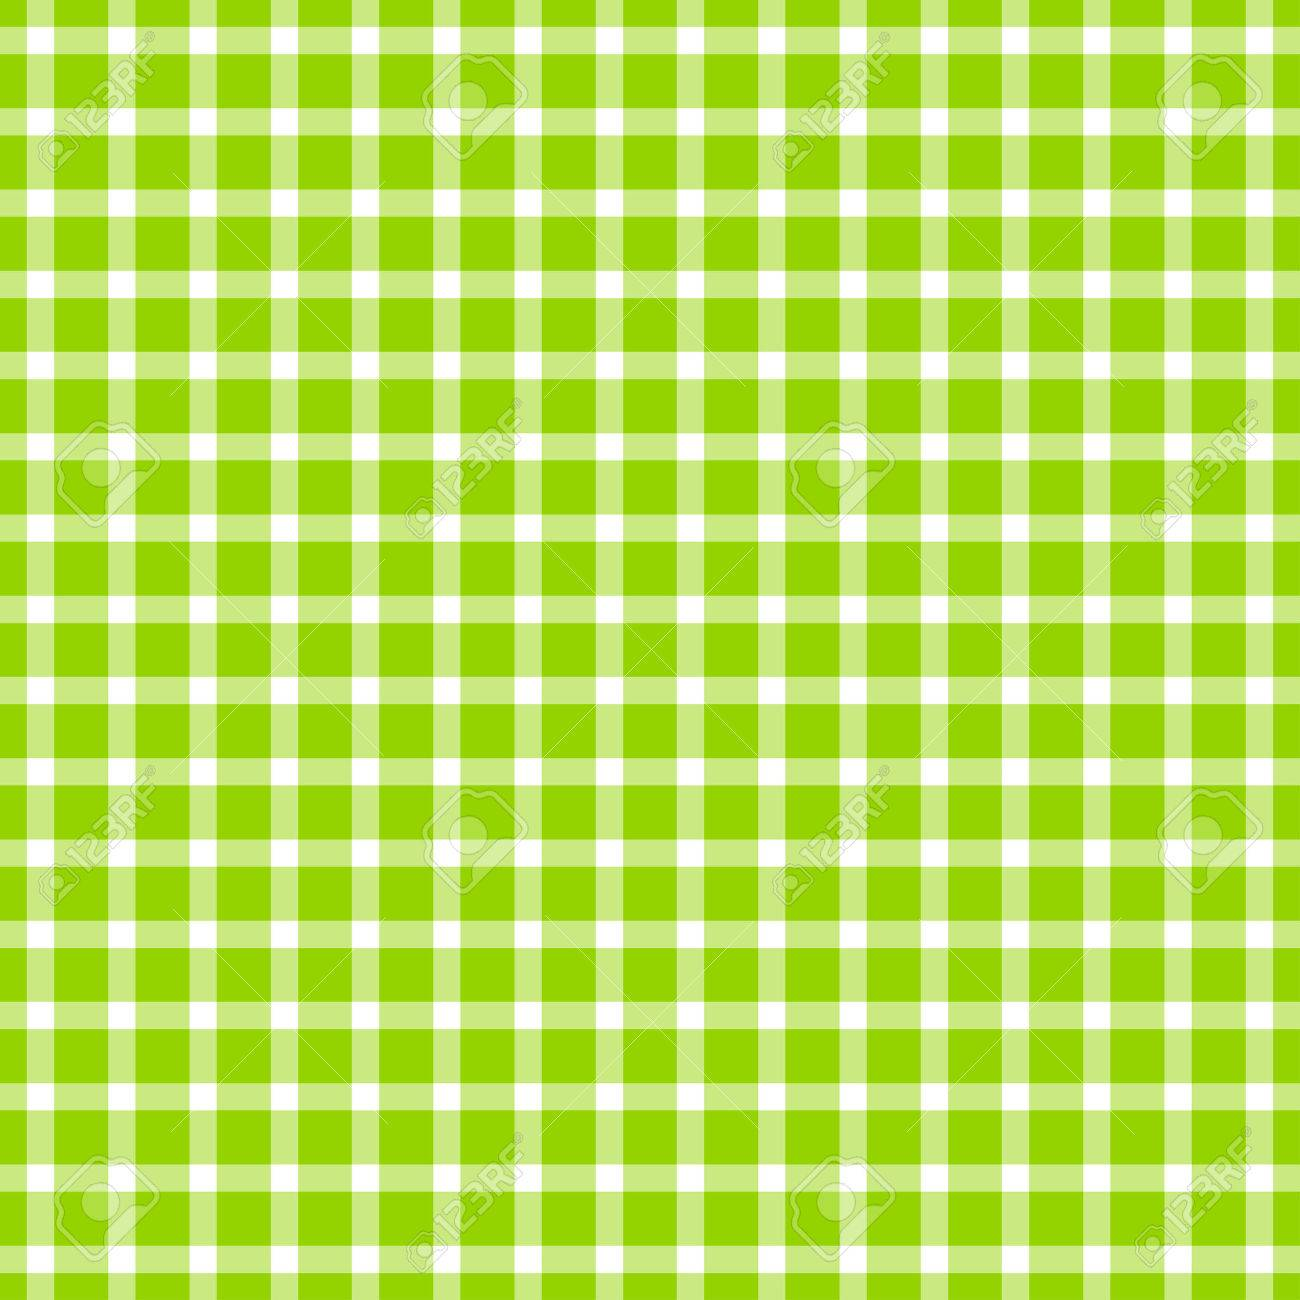 Checkered Design Seamless Green Colored Checkered Table Cloth Pattern For